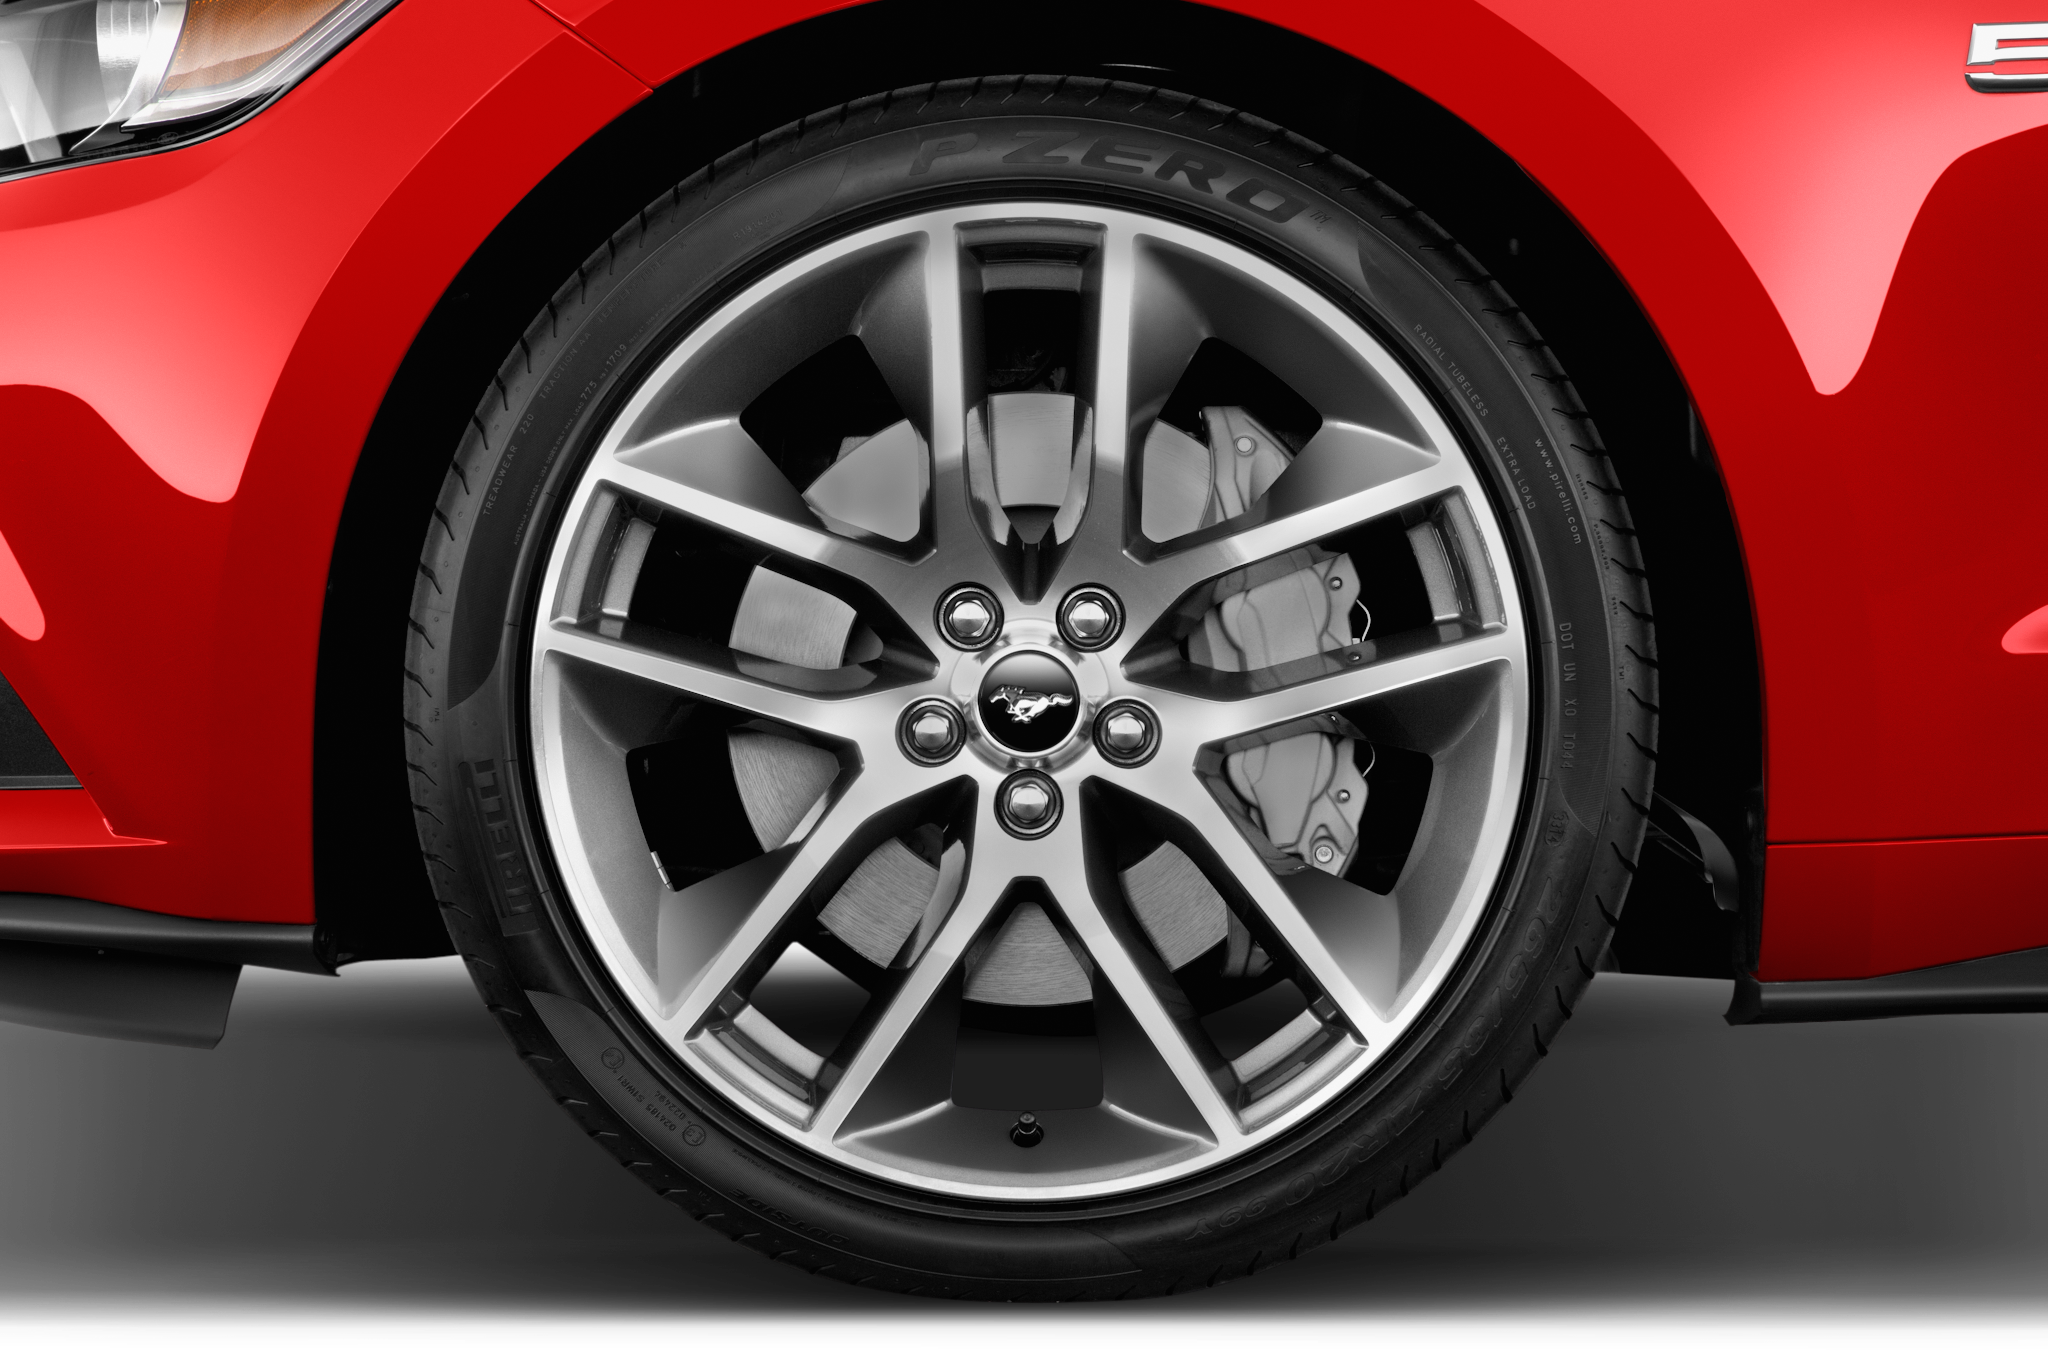 2015 Mustang Gt Used Ebay >> Tire Rims 20 Inch | 2018 Dodge Reviews